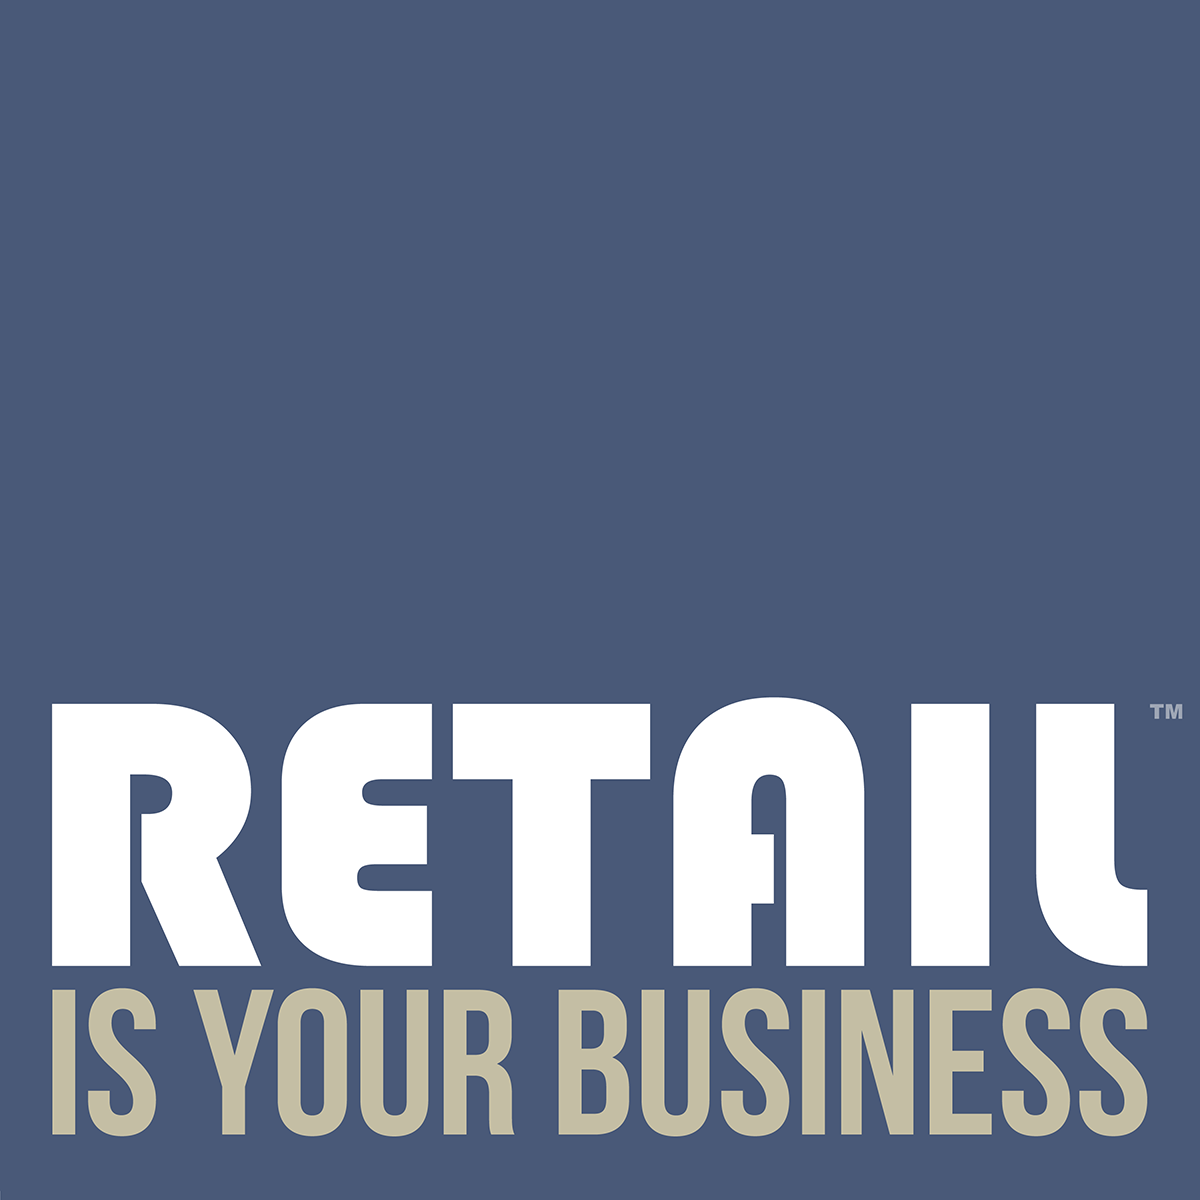 Retail Is Your Business - Retail Is Your Business is a weekly podcast covering the intersection of innovation/technology and business strategy in the world of retail (online and offline, across all industries) -- with a focus on consumer experience. As informed hosts dive deep with insiders -- from industry leaders to cutting edge startup founders -- crucial insights, career journeys, trends, new ideas, and the state and trajectory of the retail industry become accessible with a fun and comfortable morning radio vibe.